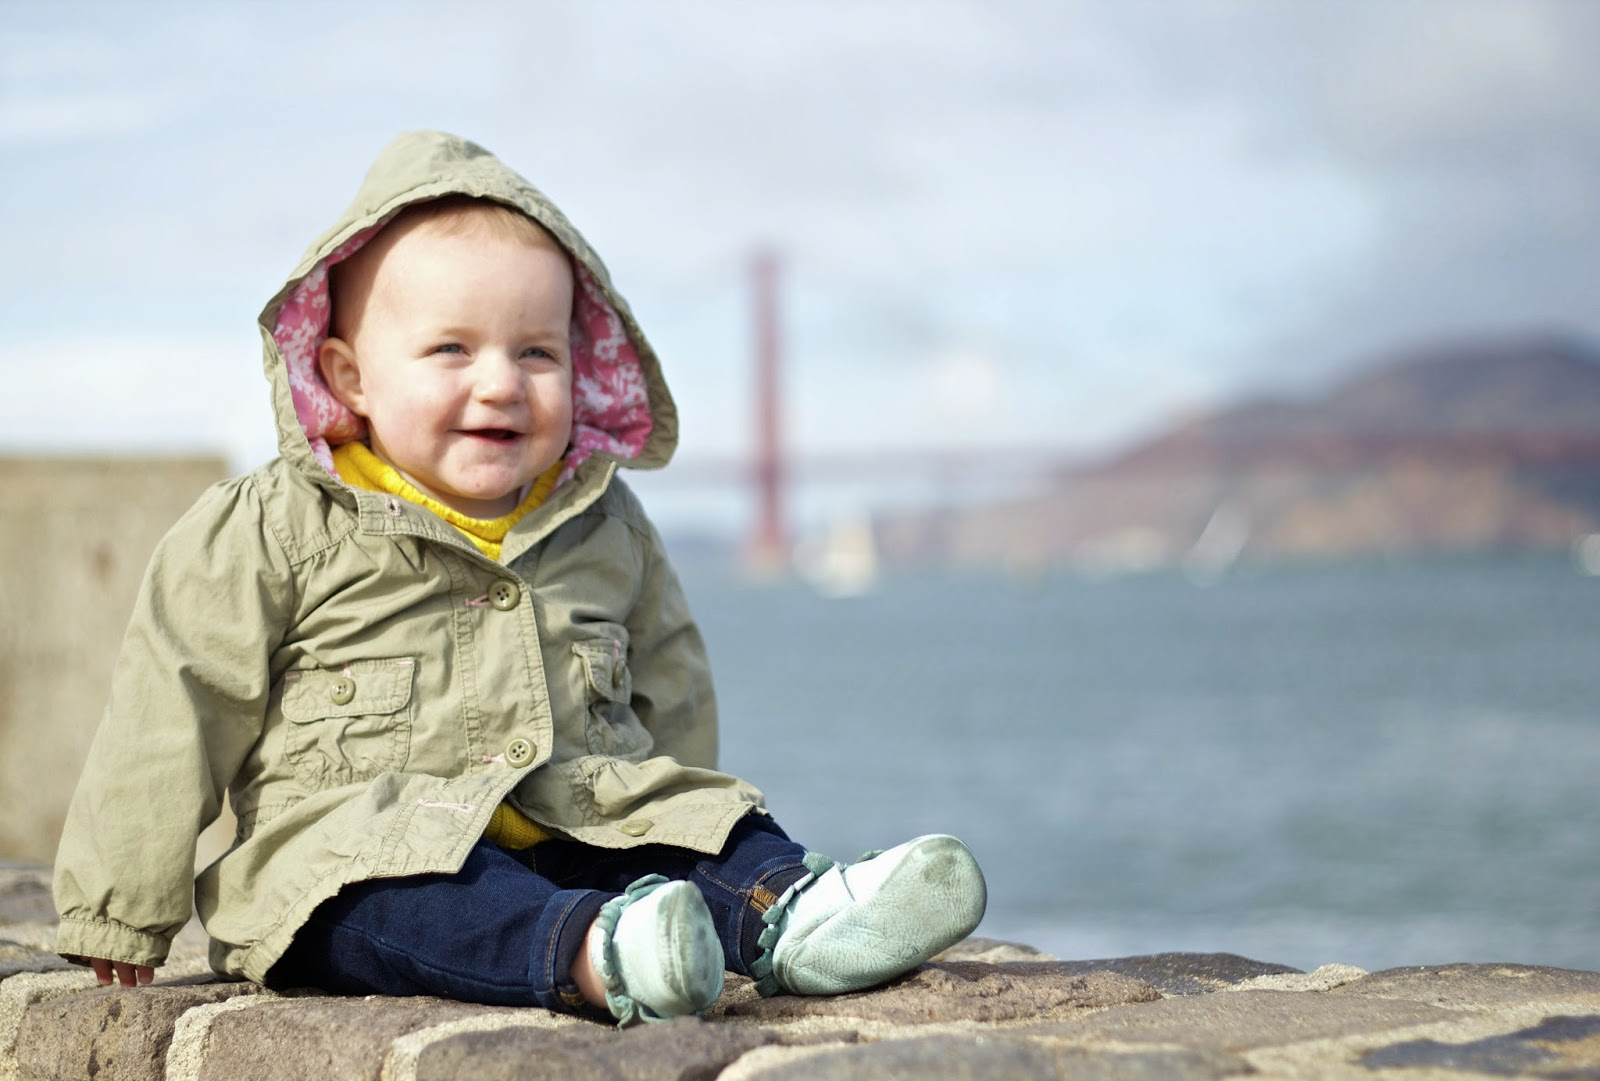 Take your kids to see the Golden Gate Bridge at Crissy Fields